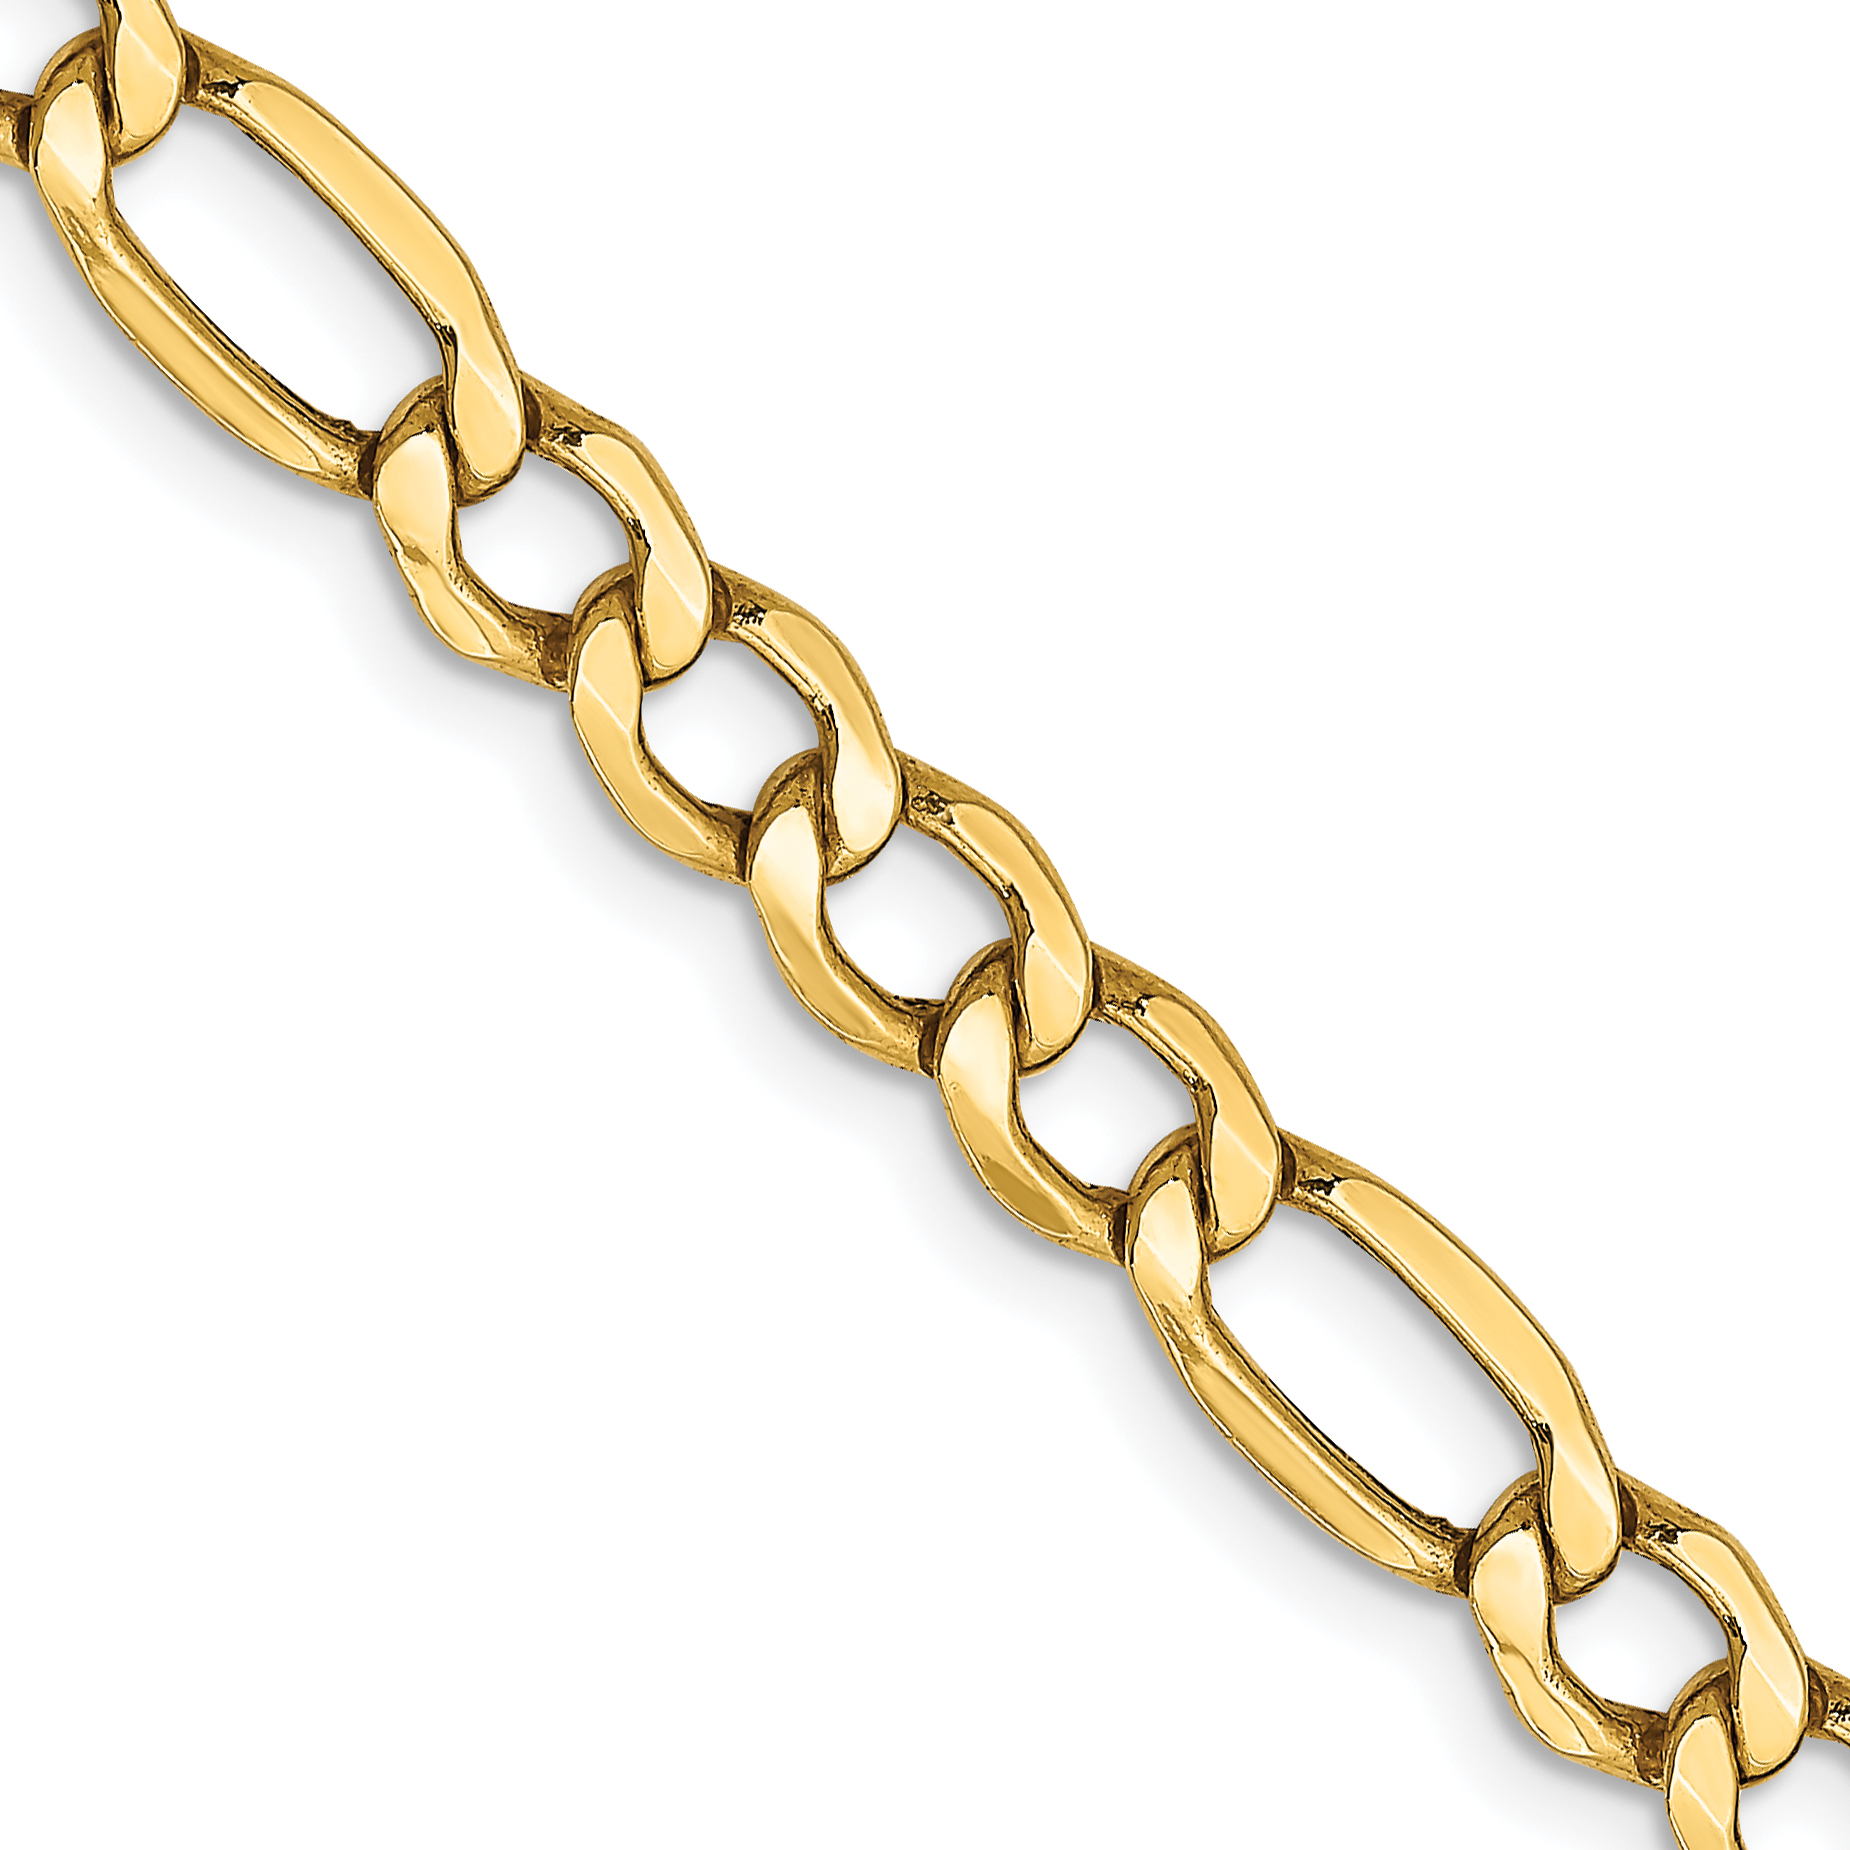 10k 5.75mm Semi-Solid Figaro Chain. Weight: 6.25,  Length: 16